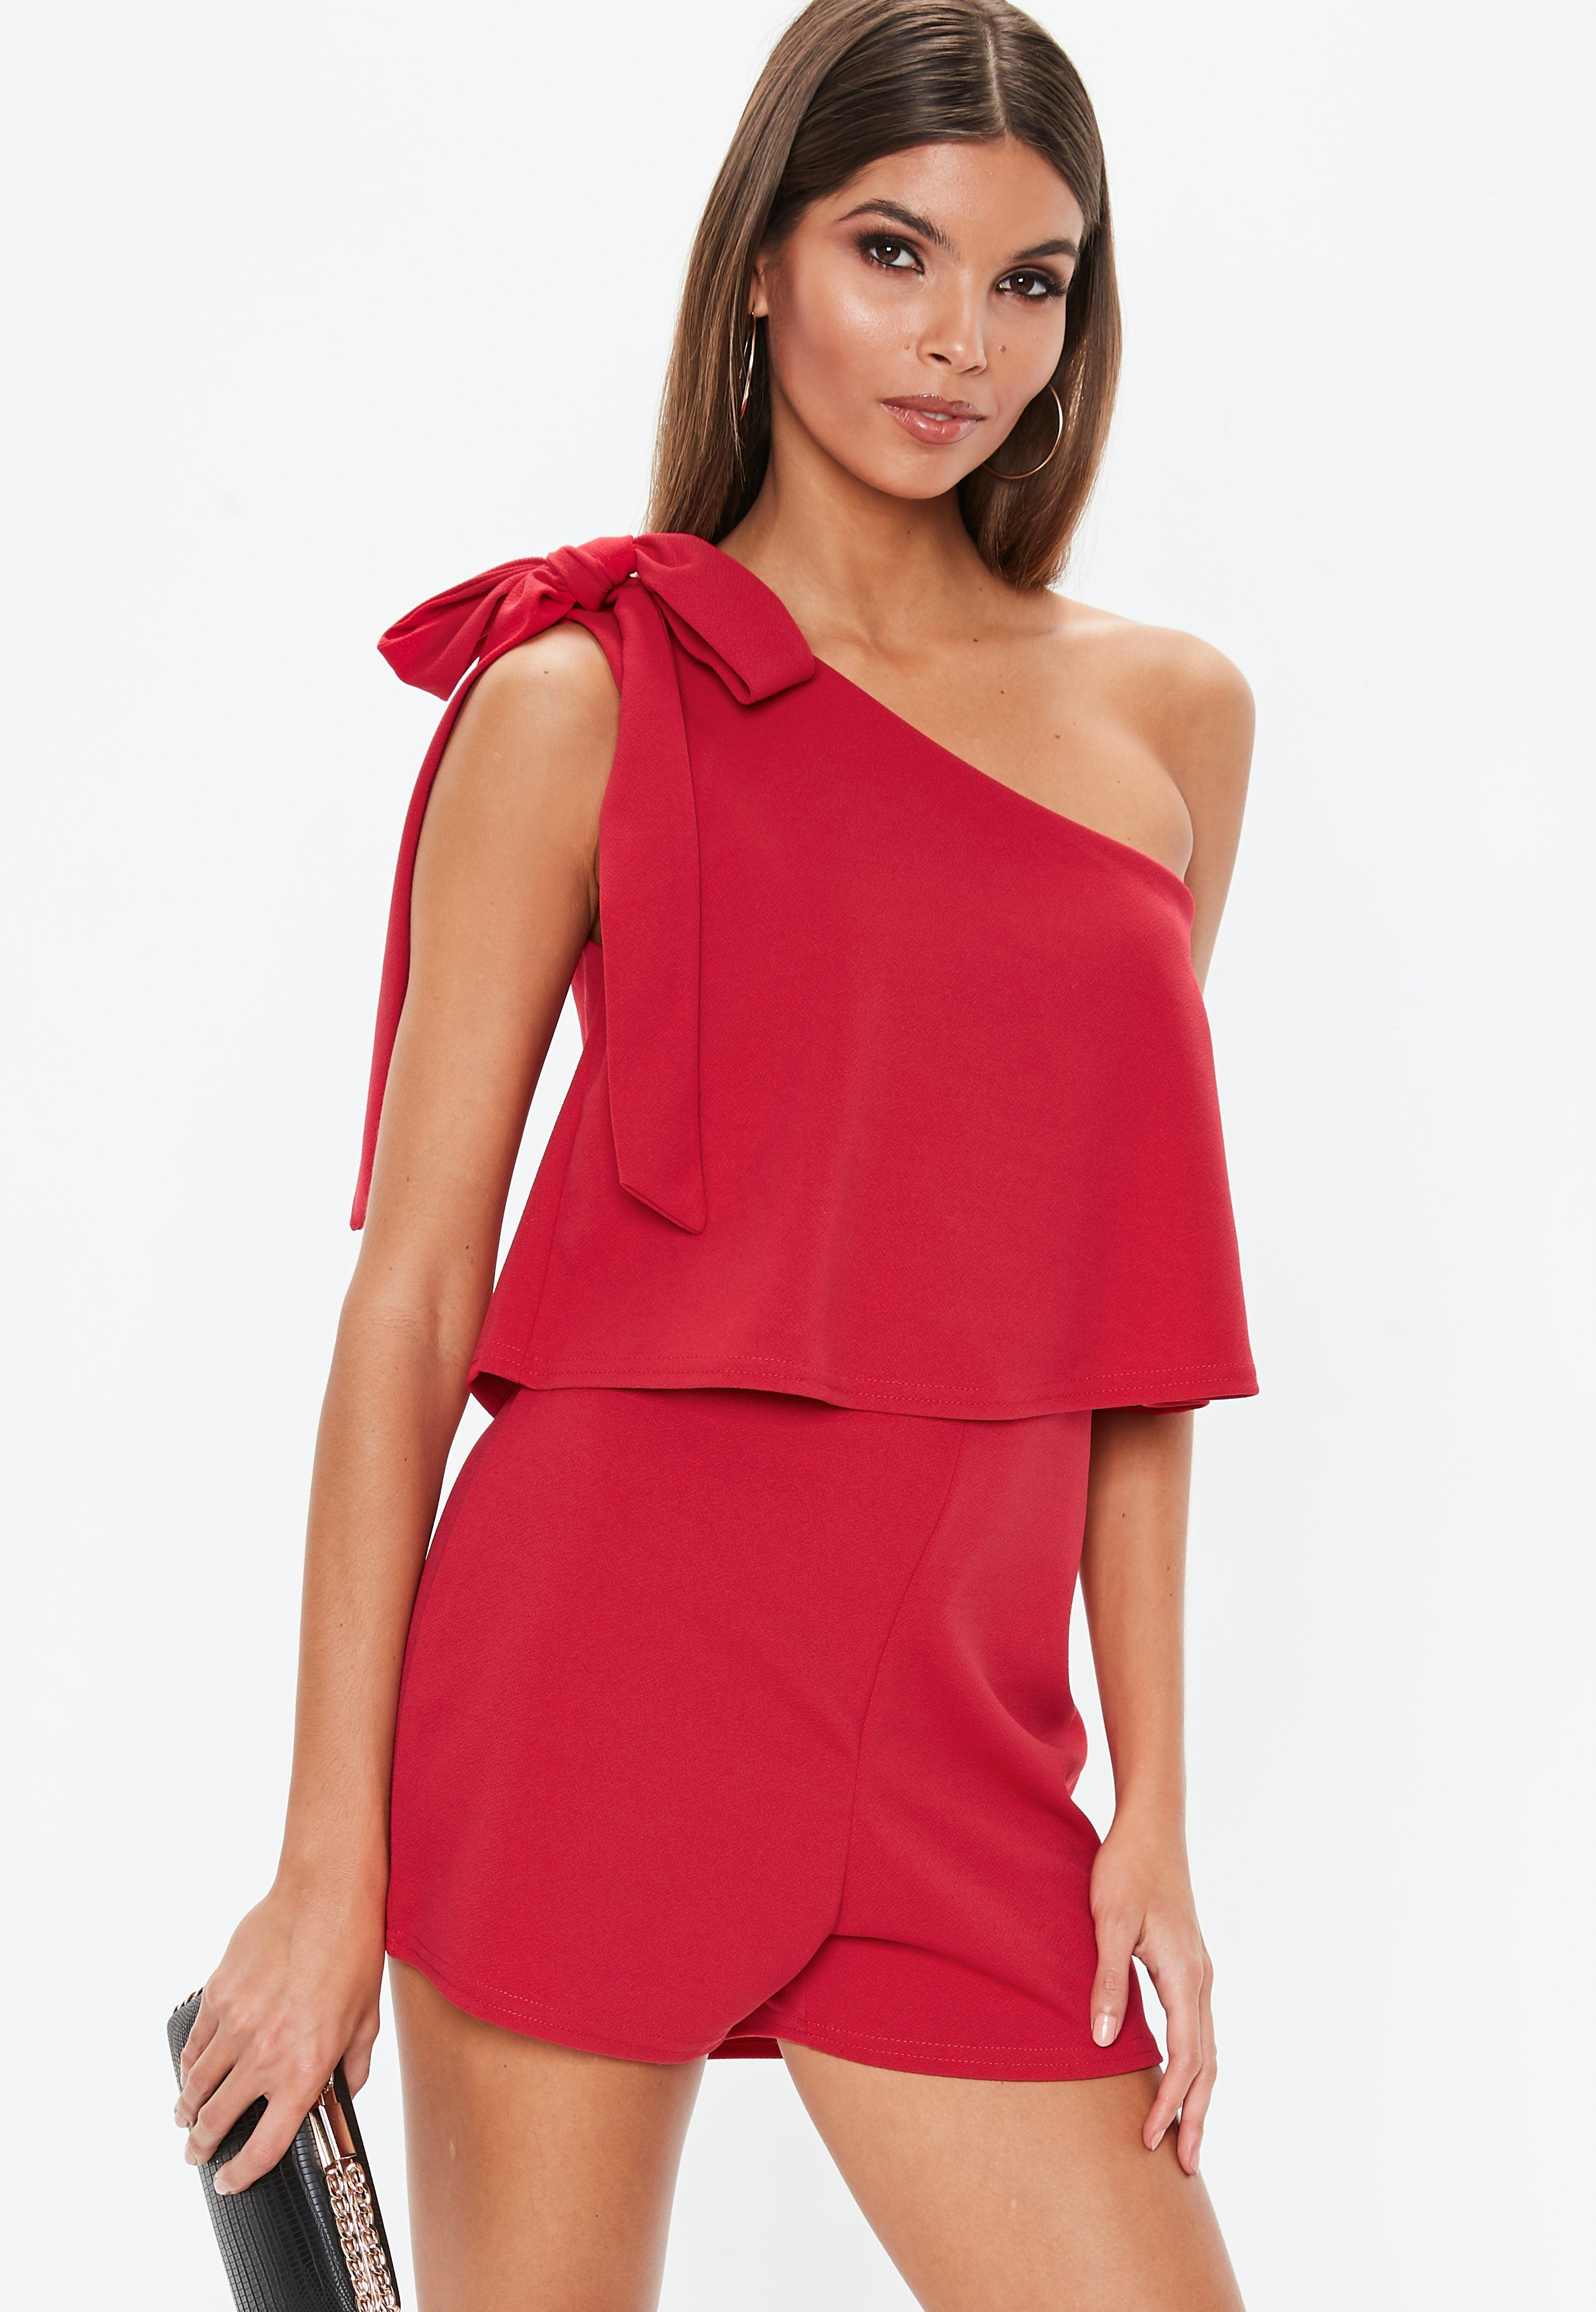 abd8879cccd9 Red Playsuits